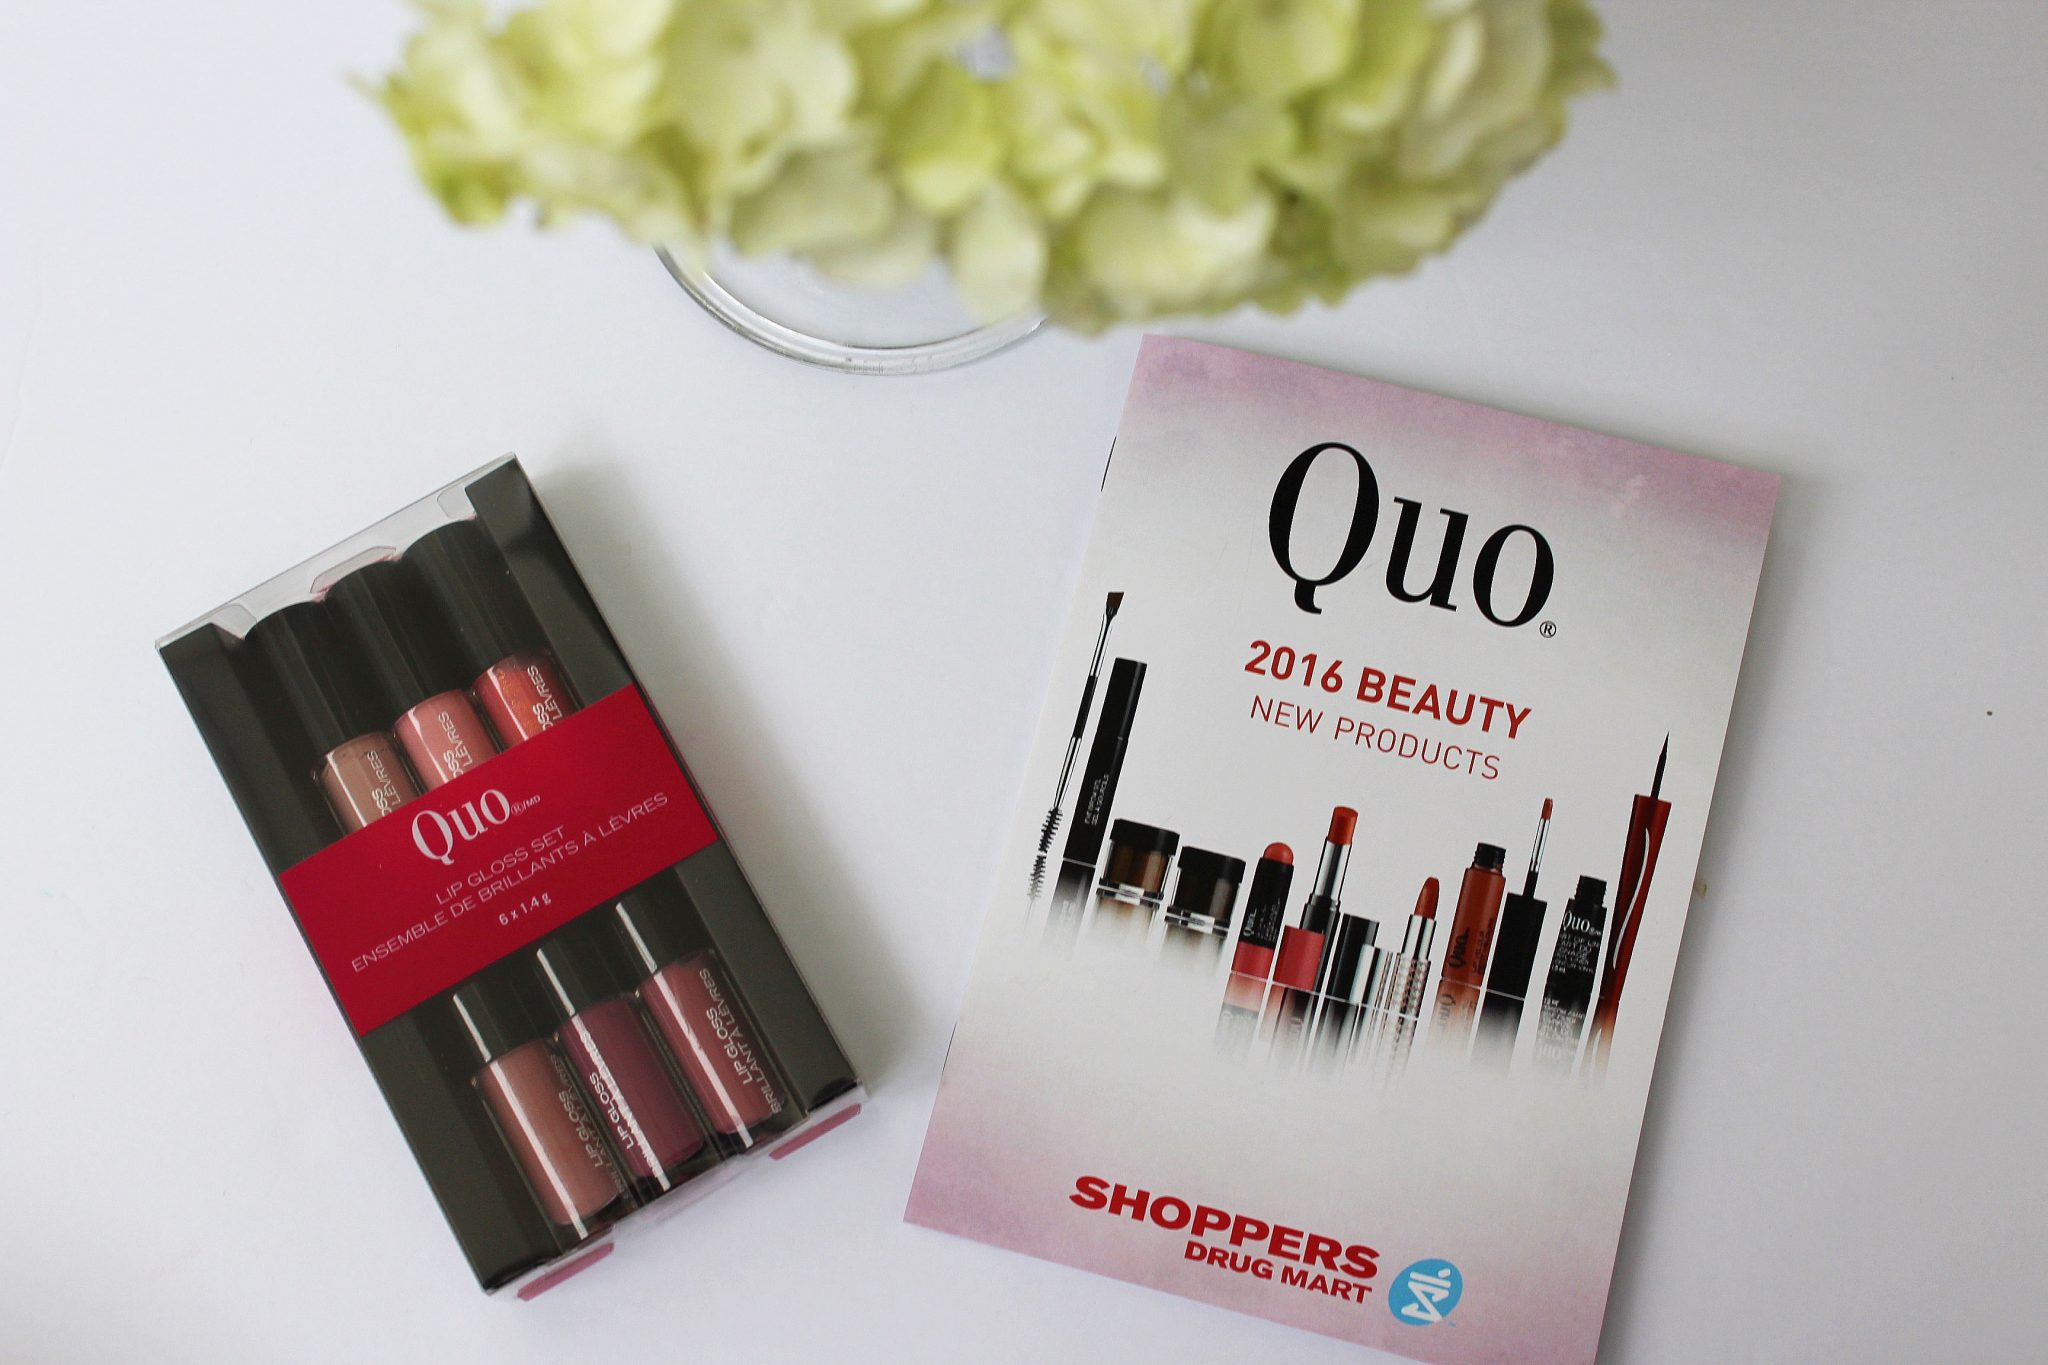 All About Quo 2016 Beauty  + Enter to Win a Quo Cosmetics Beauty Haul!